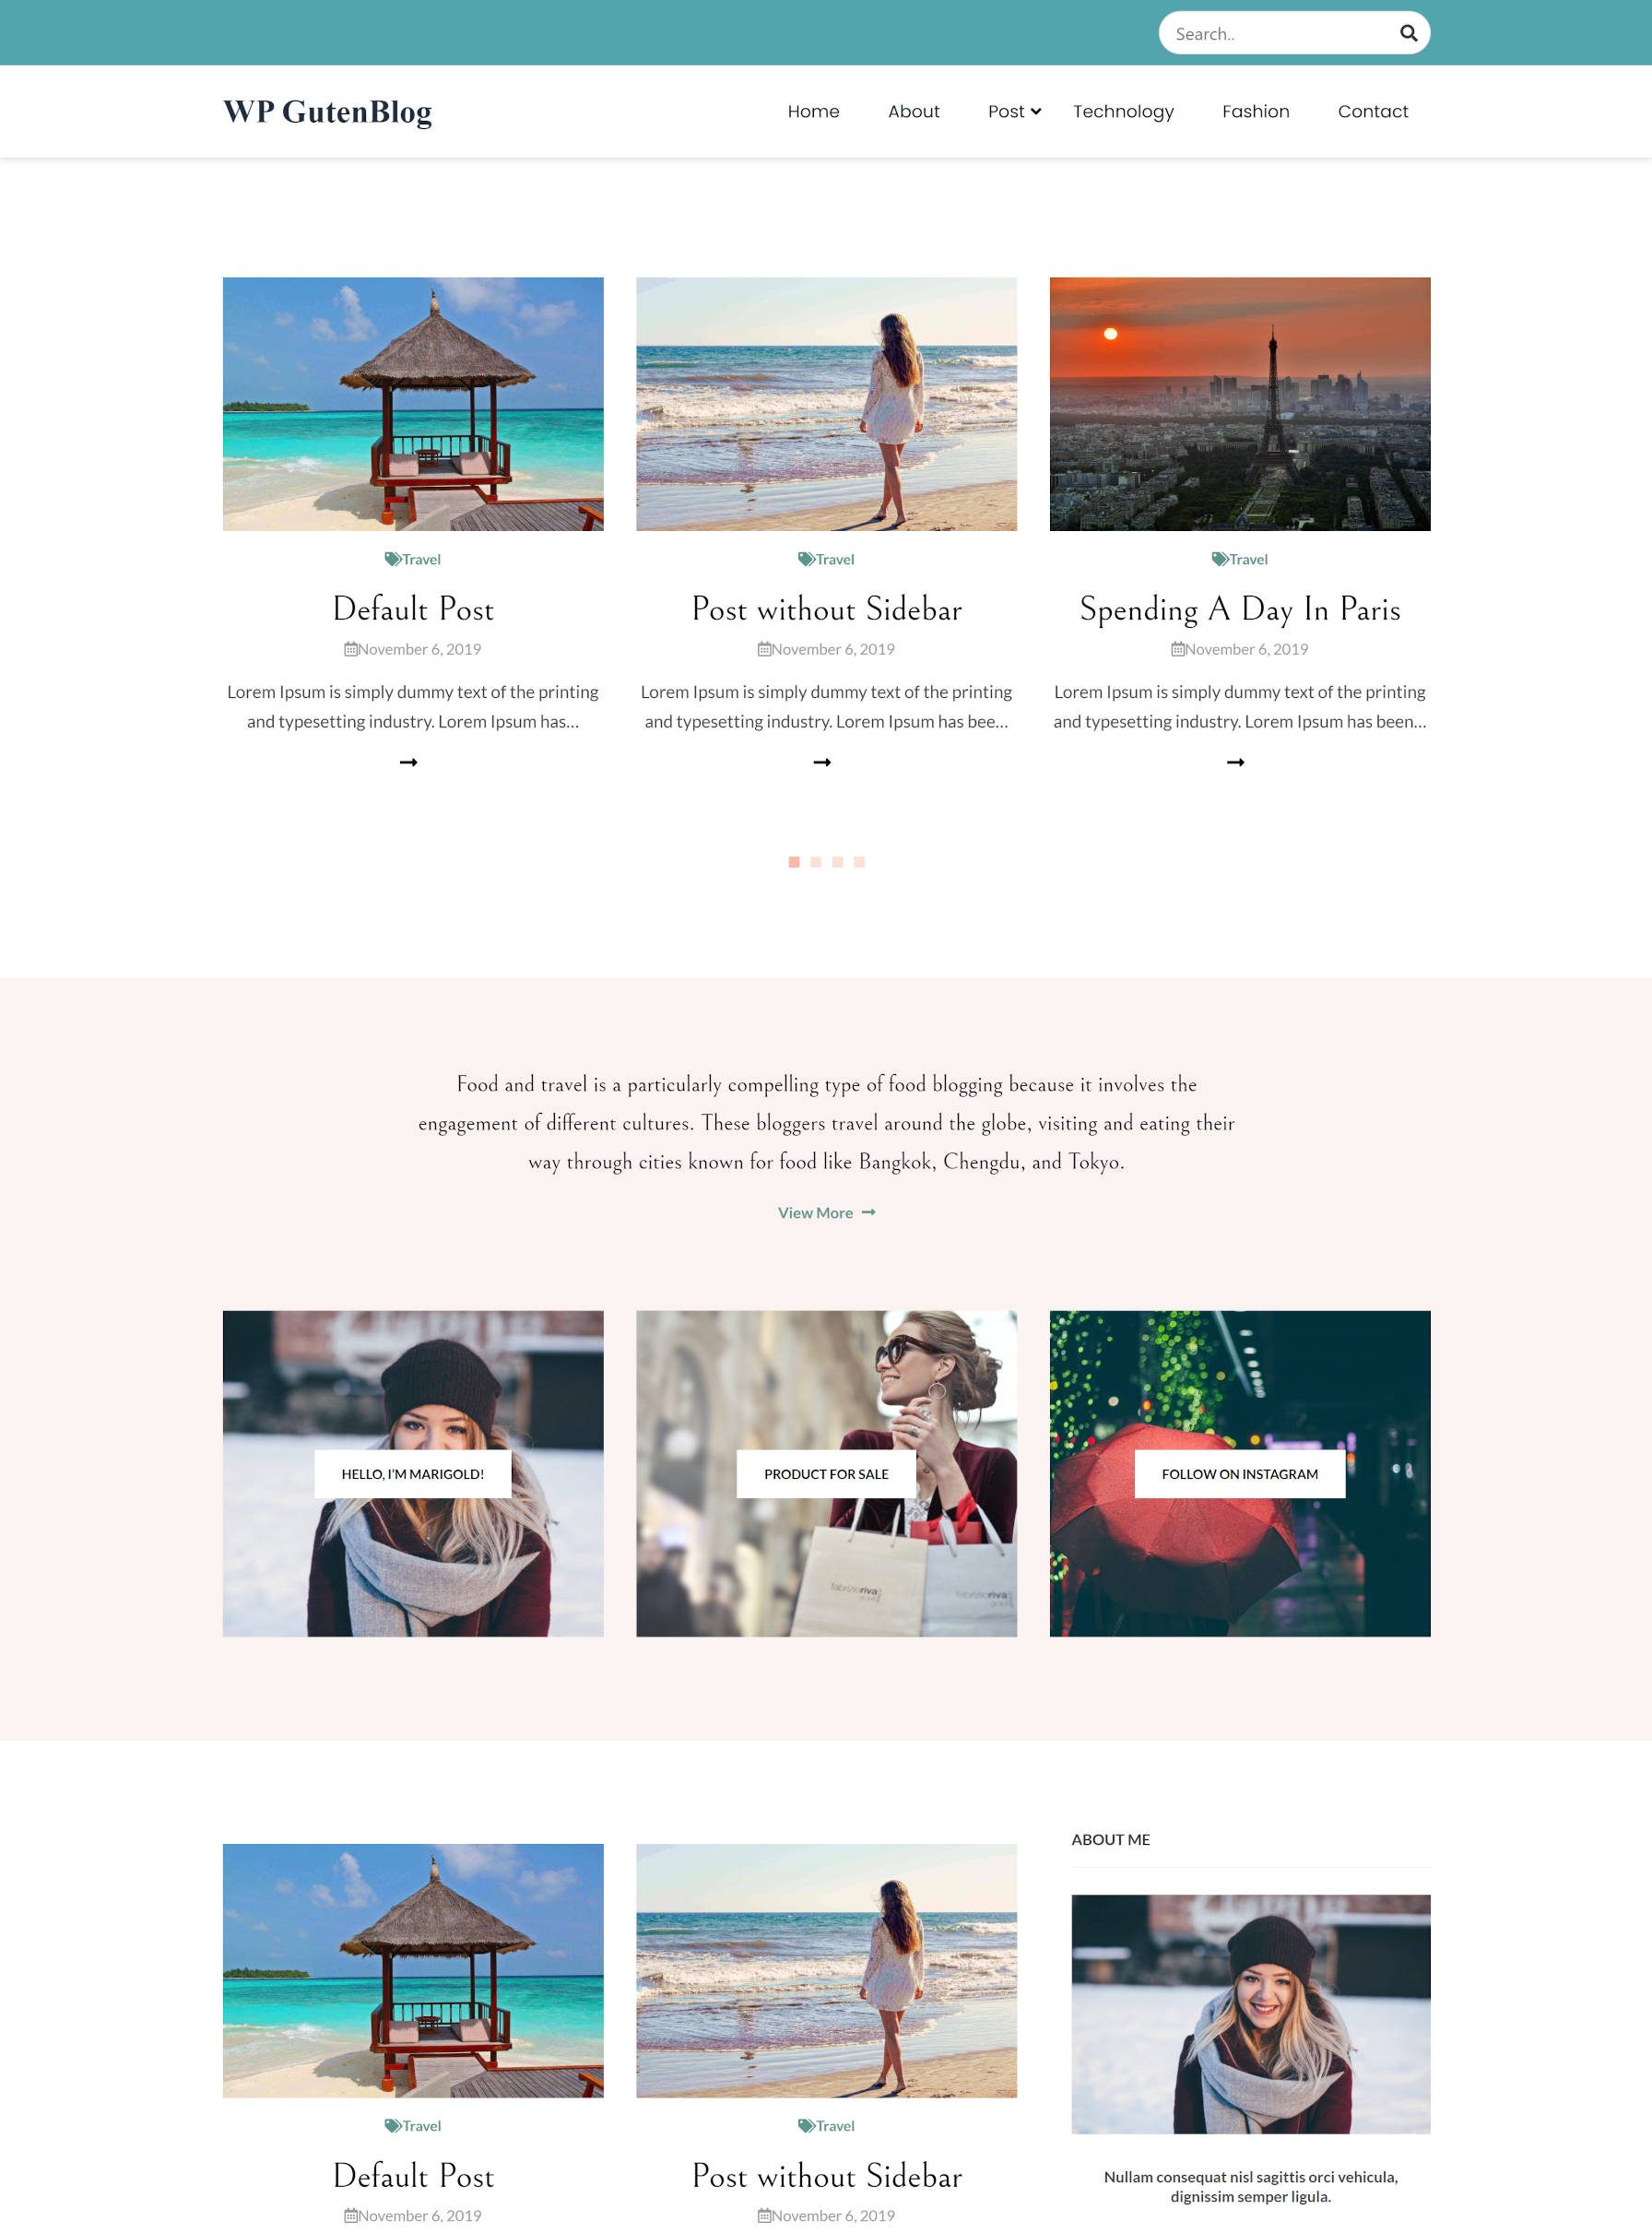 WordPress theme homepage design with carousel of posts, followed by section of boxes, followed by more posts.